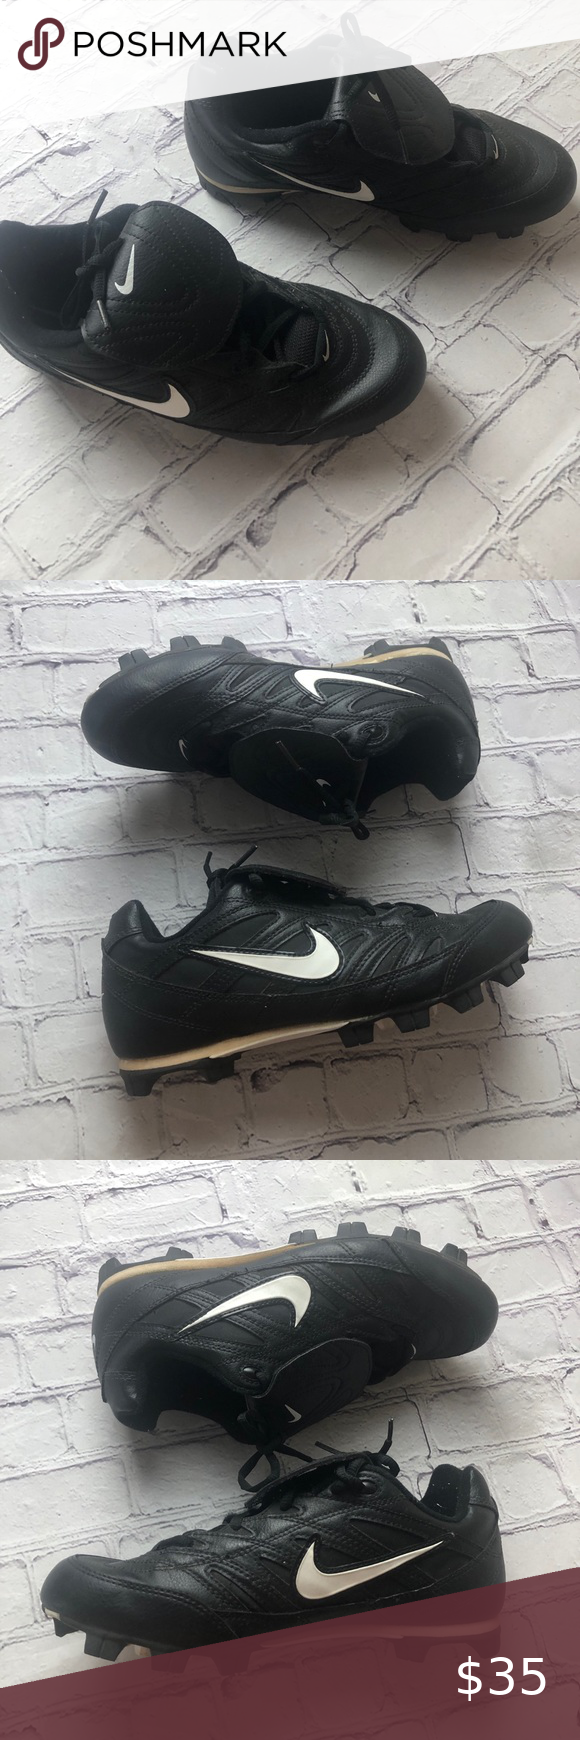 Nike Baseball Cleats Size 8 5 Excellent In 2020 Baseball Cleats Cleats Nike Cleats